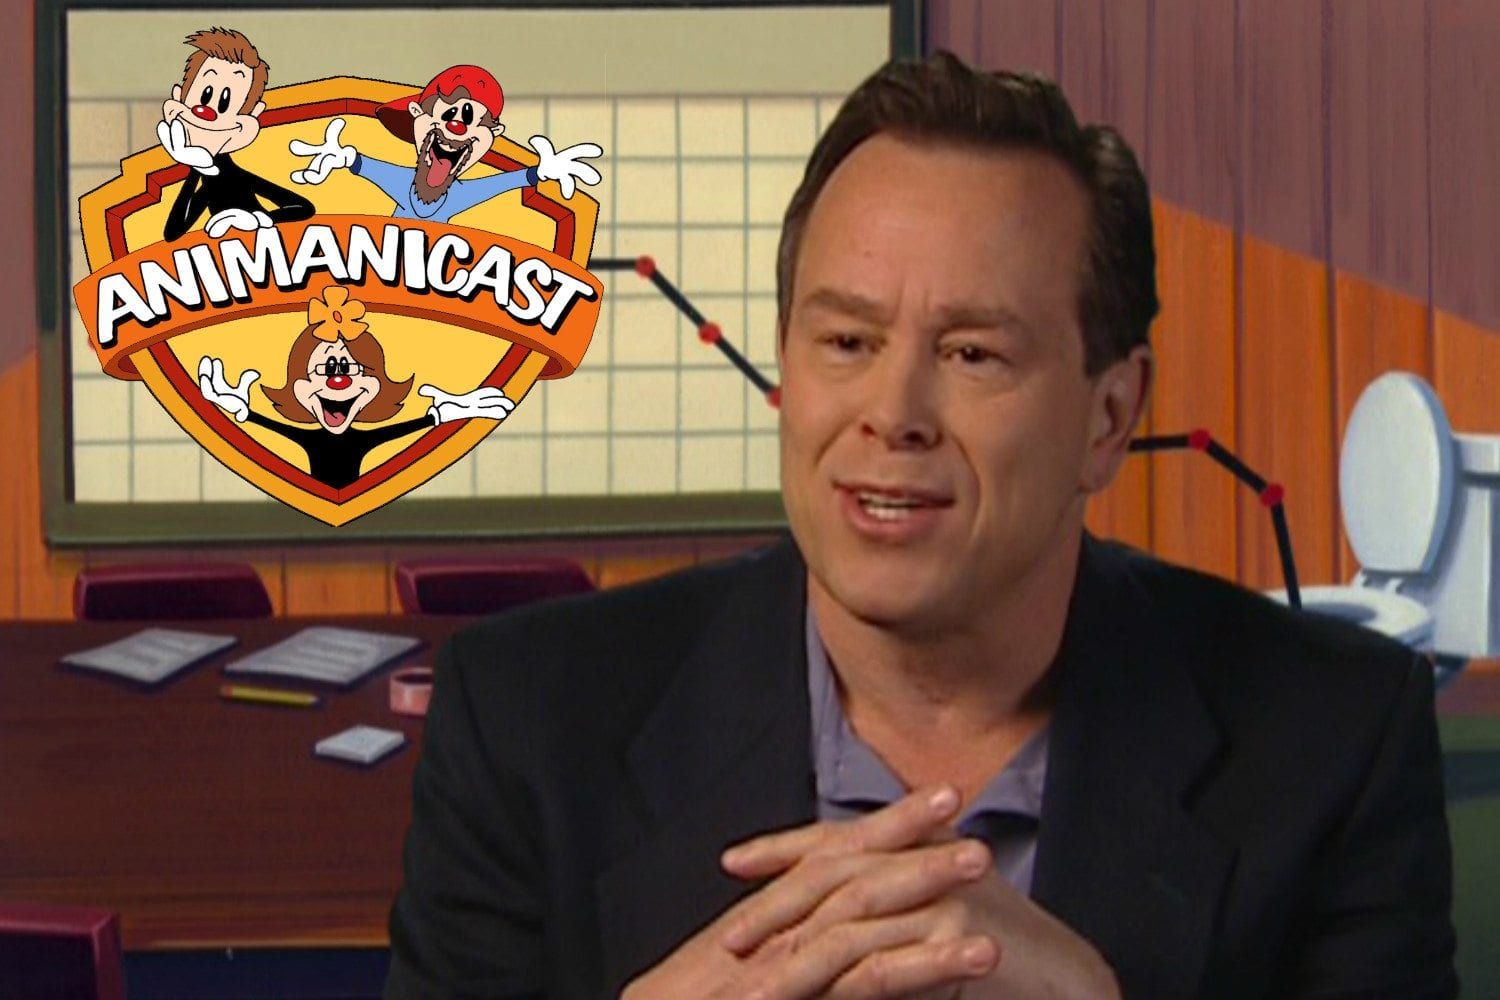 Animanicast #61a: A Discussion with Animaniacs Senior Producer Tom Ruegger- Part Two